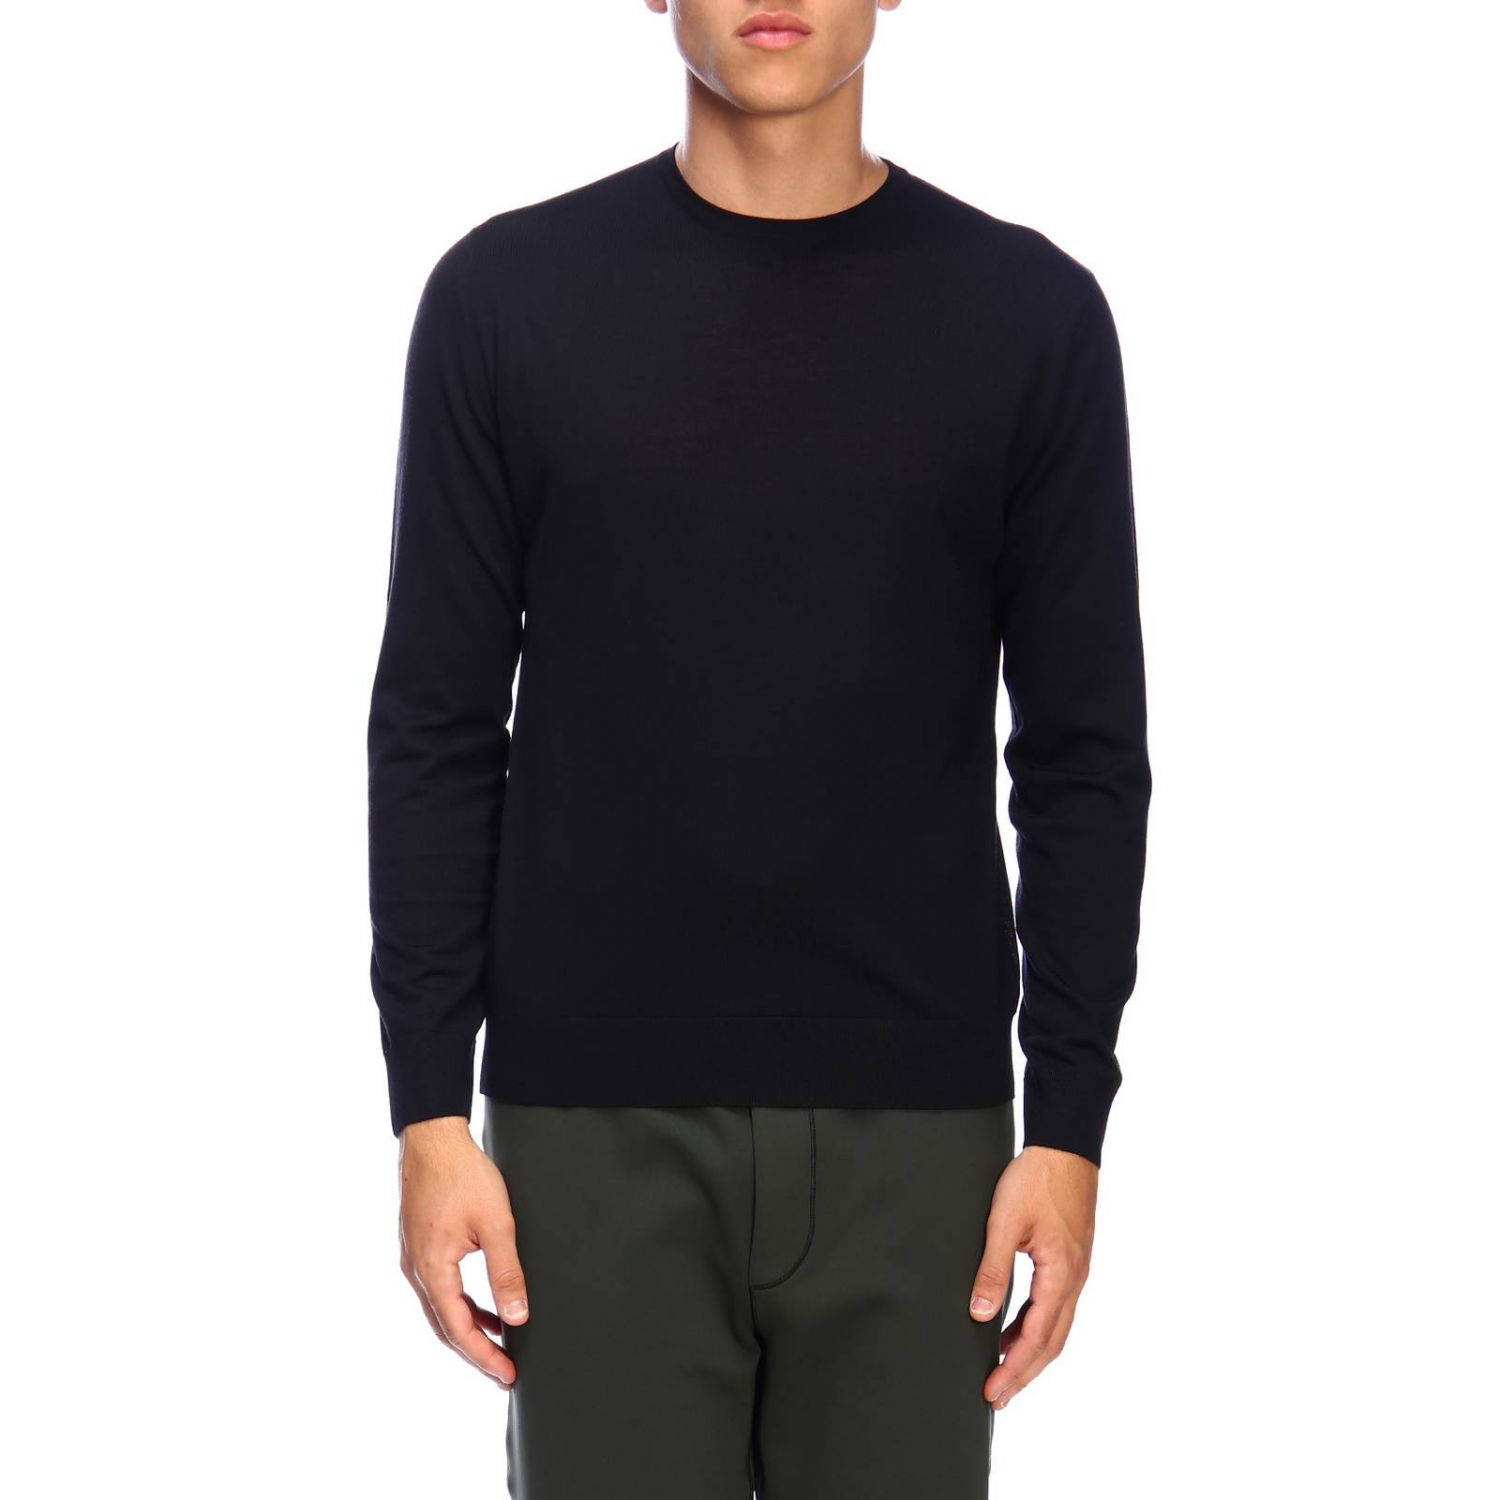 Prada knit sweater in worsted wool with a fineness of 30 black 1